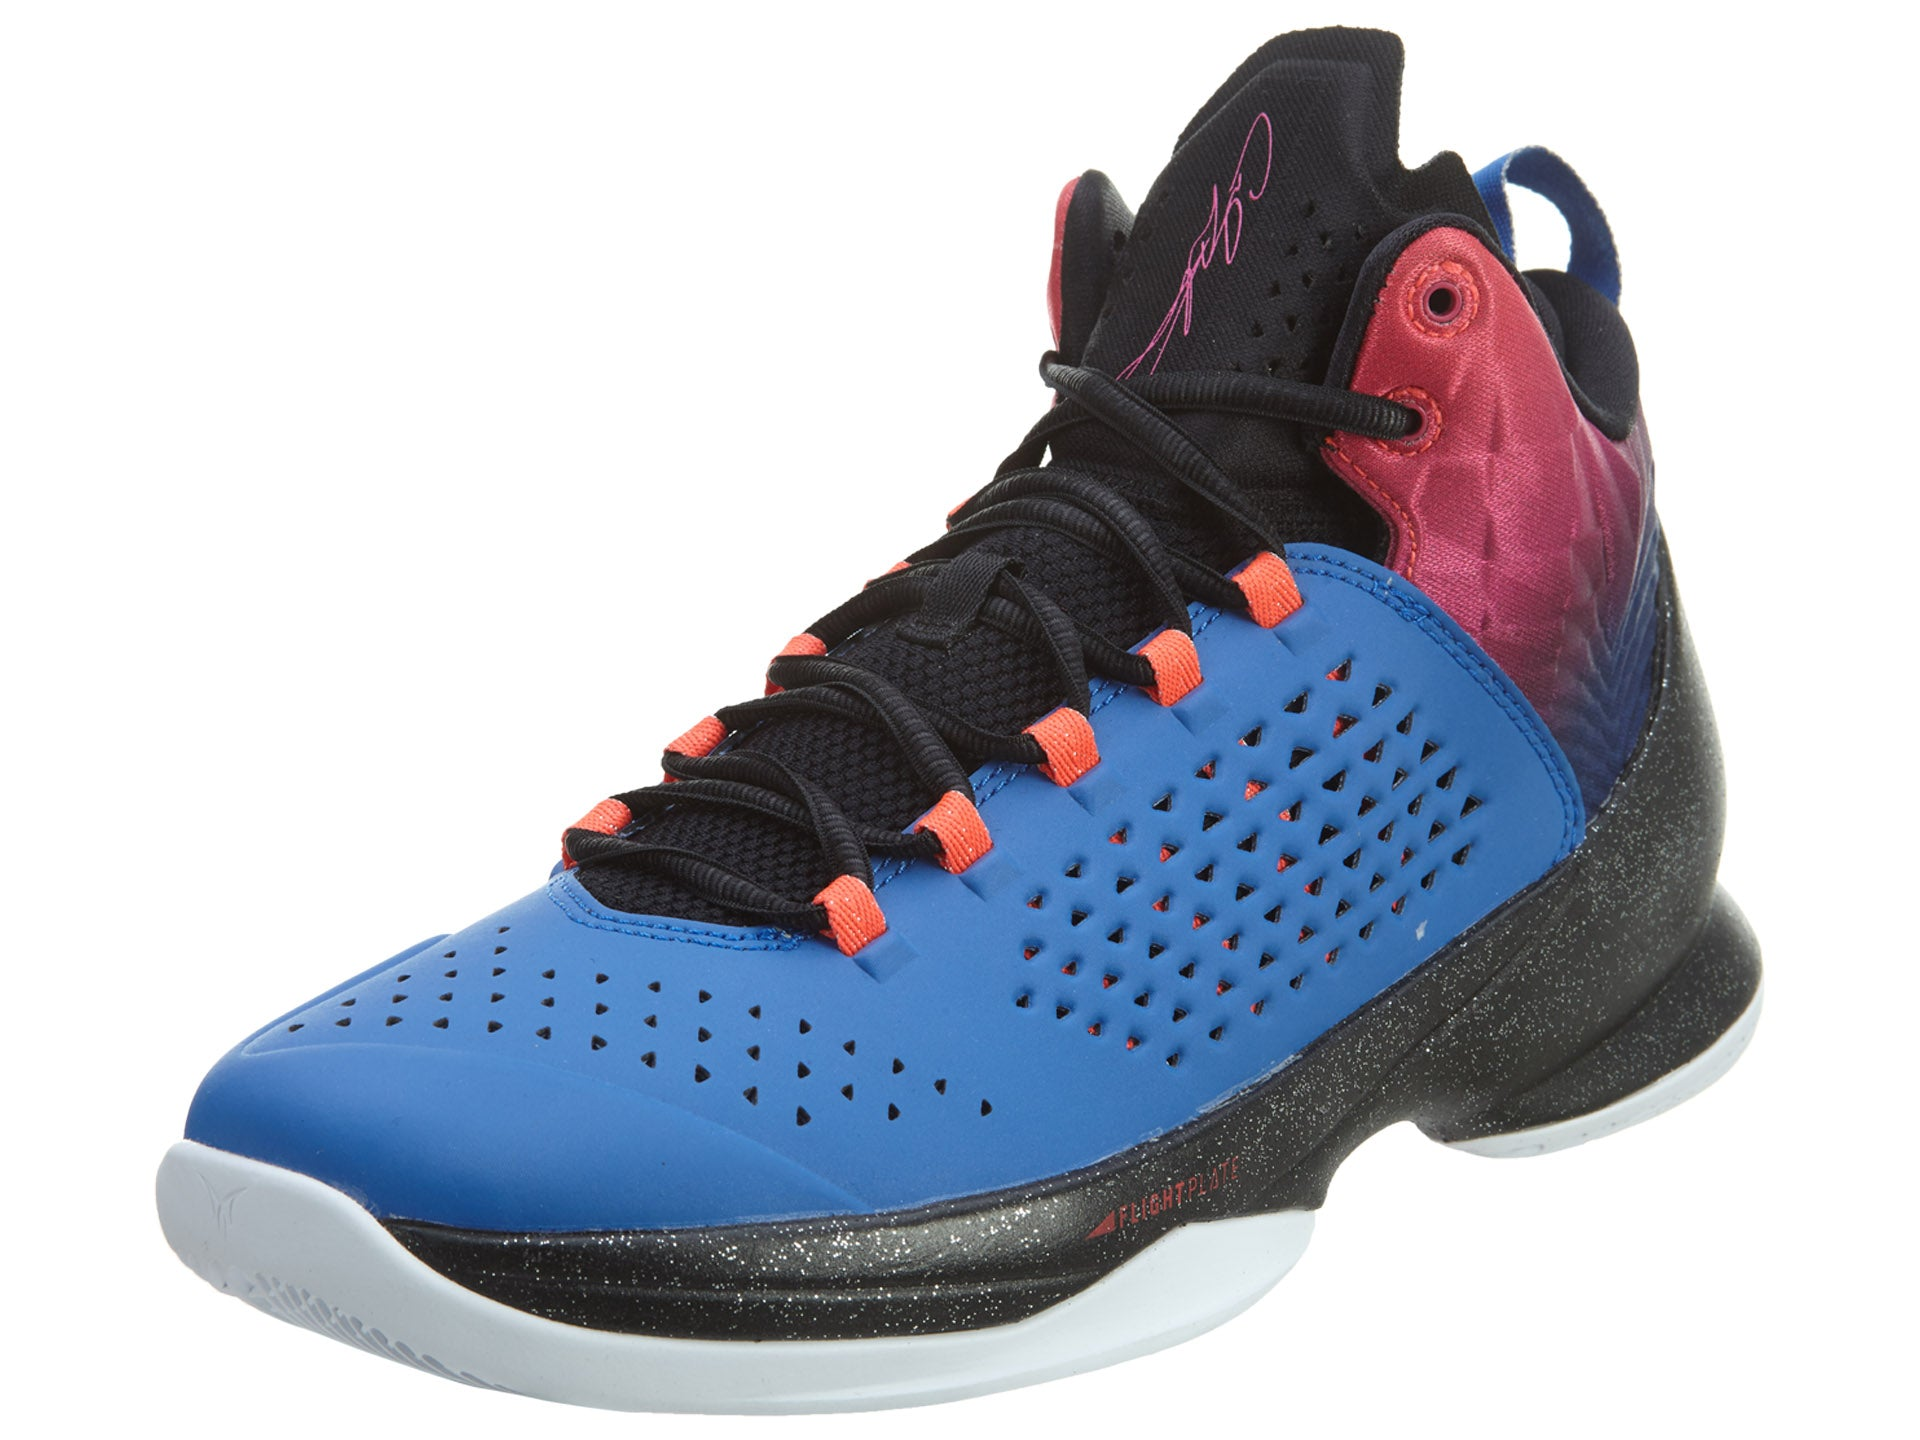 dea96d1aad8a Jordan Melo M11 Gym Royal Metallic Silver-Black-Frbrry – talkmoney730